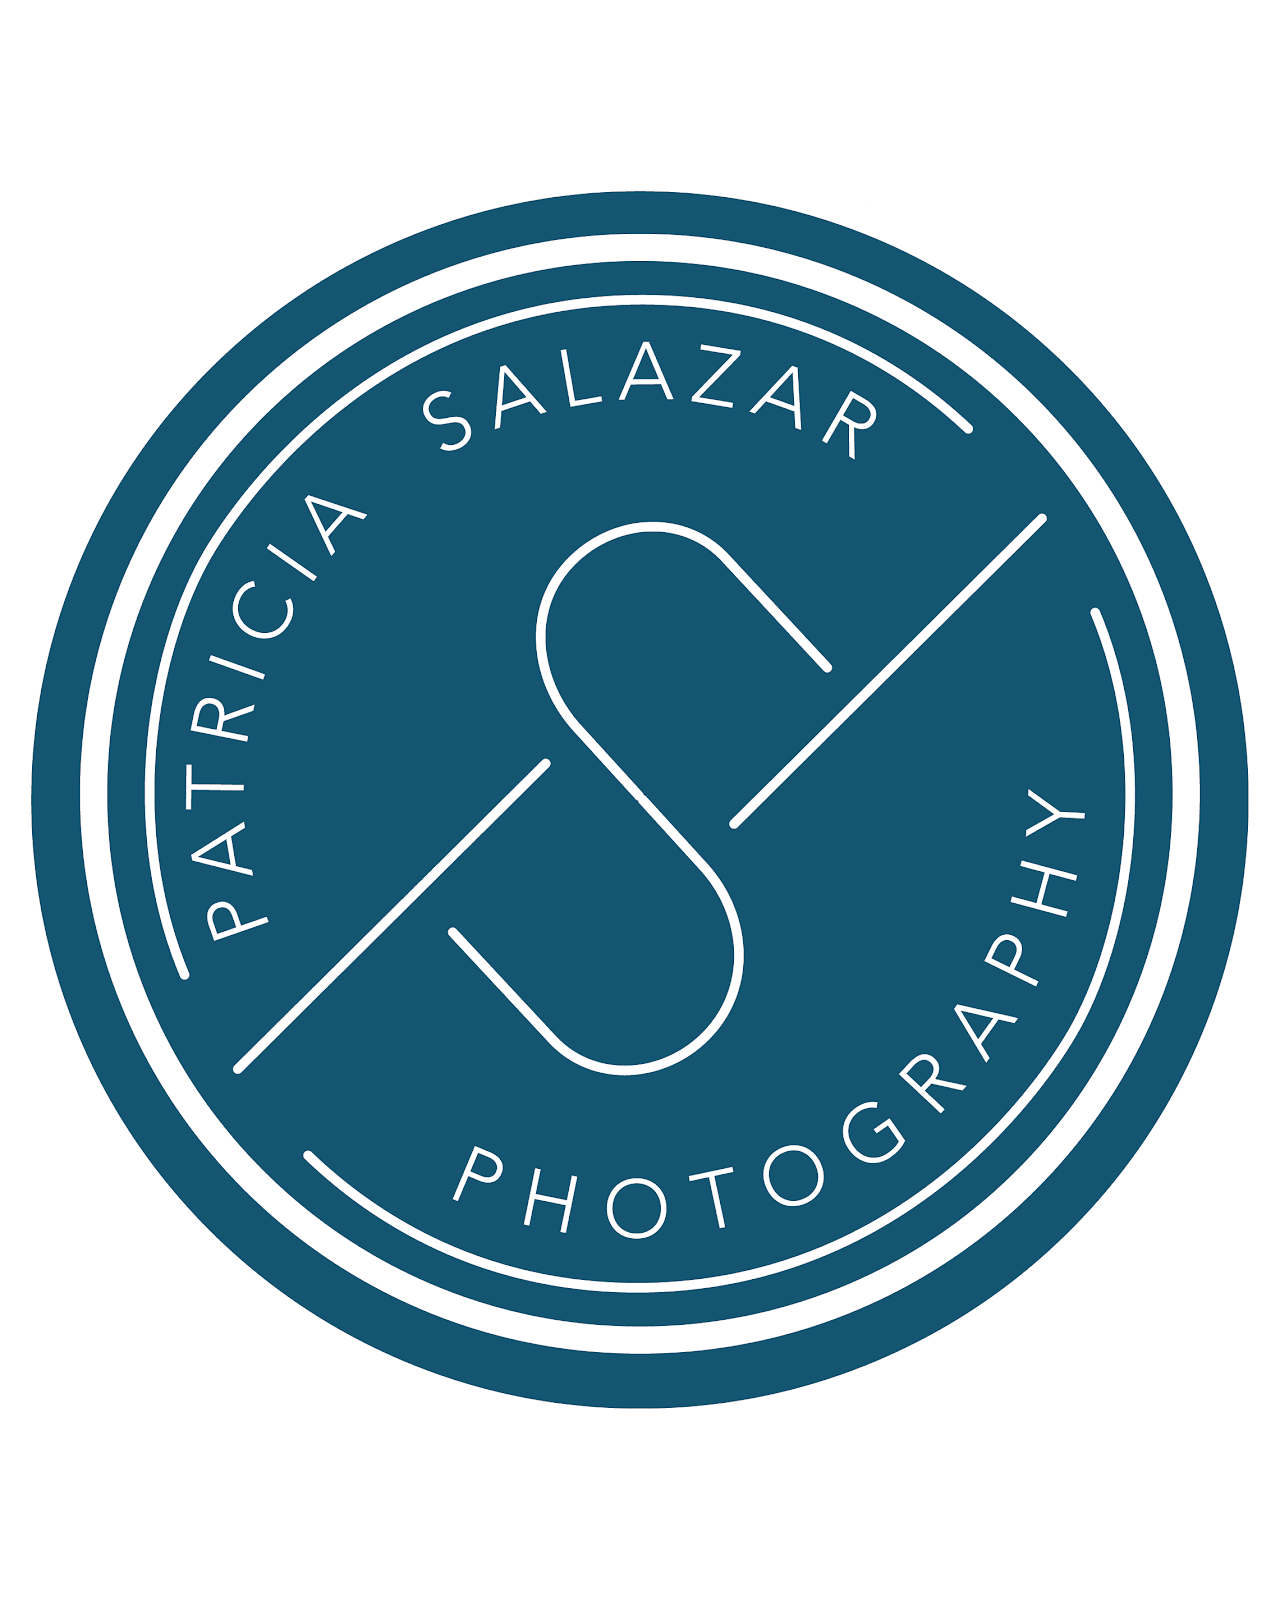 Patricia Salazar Photography